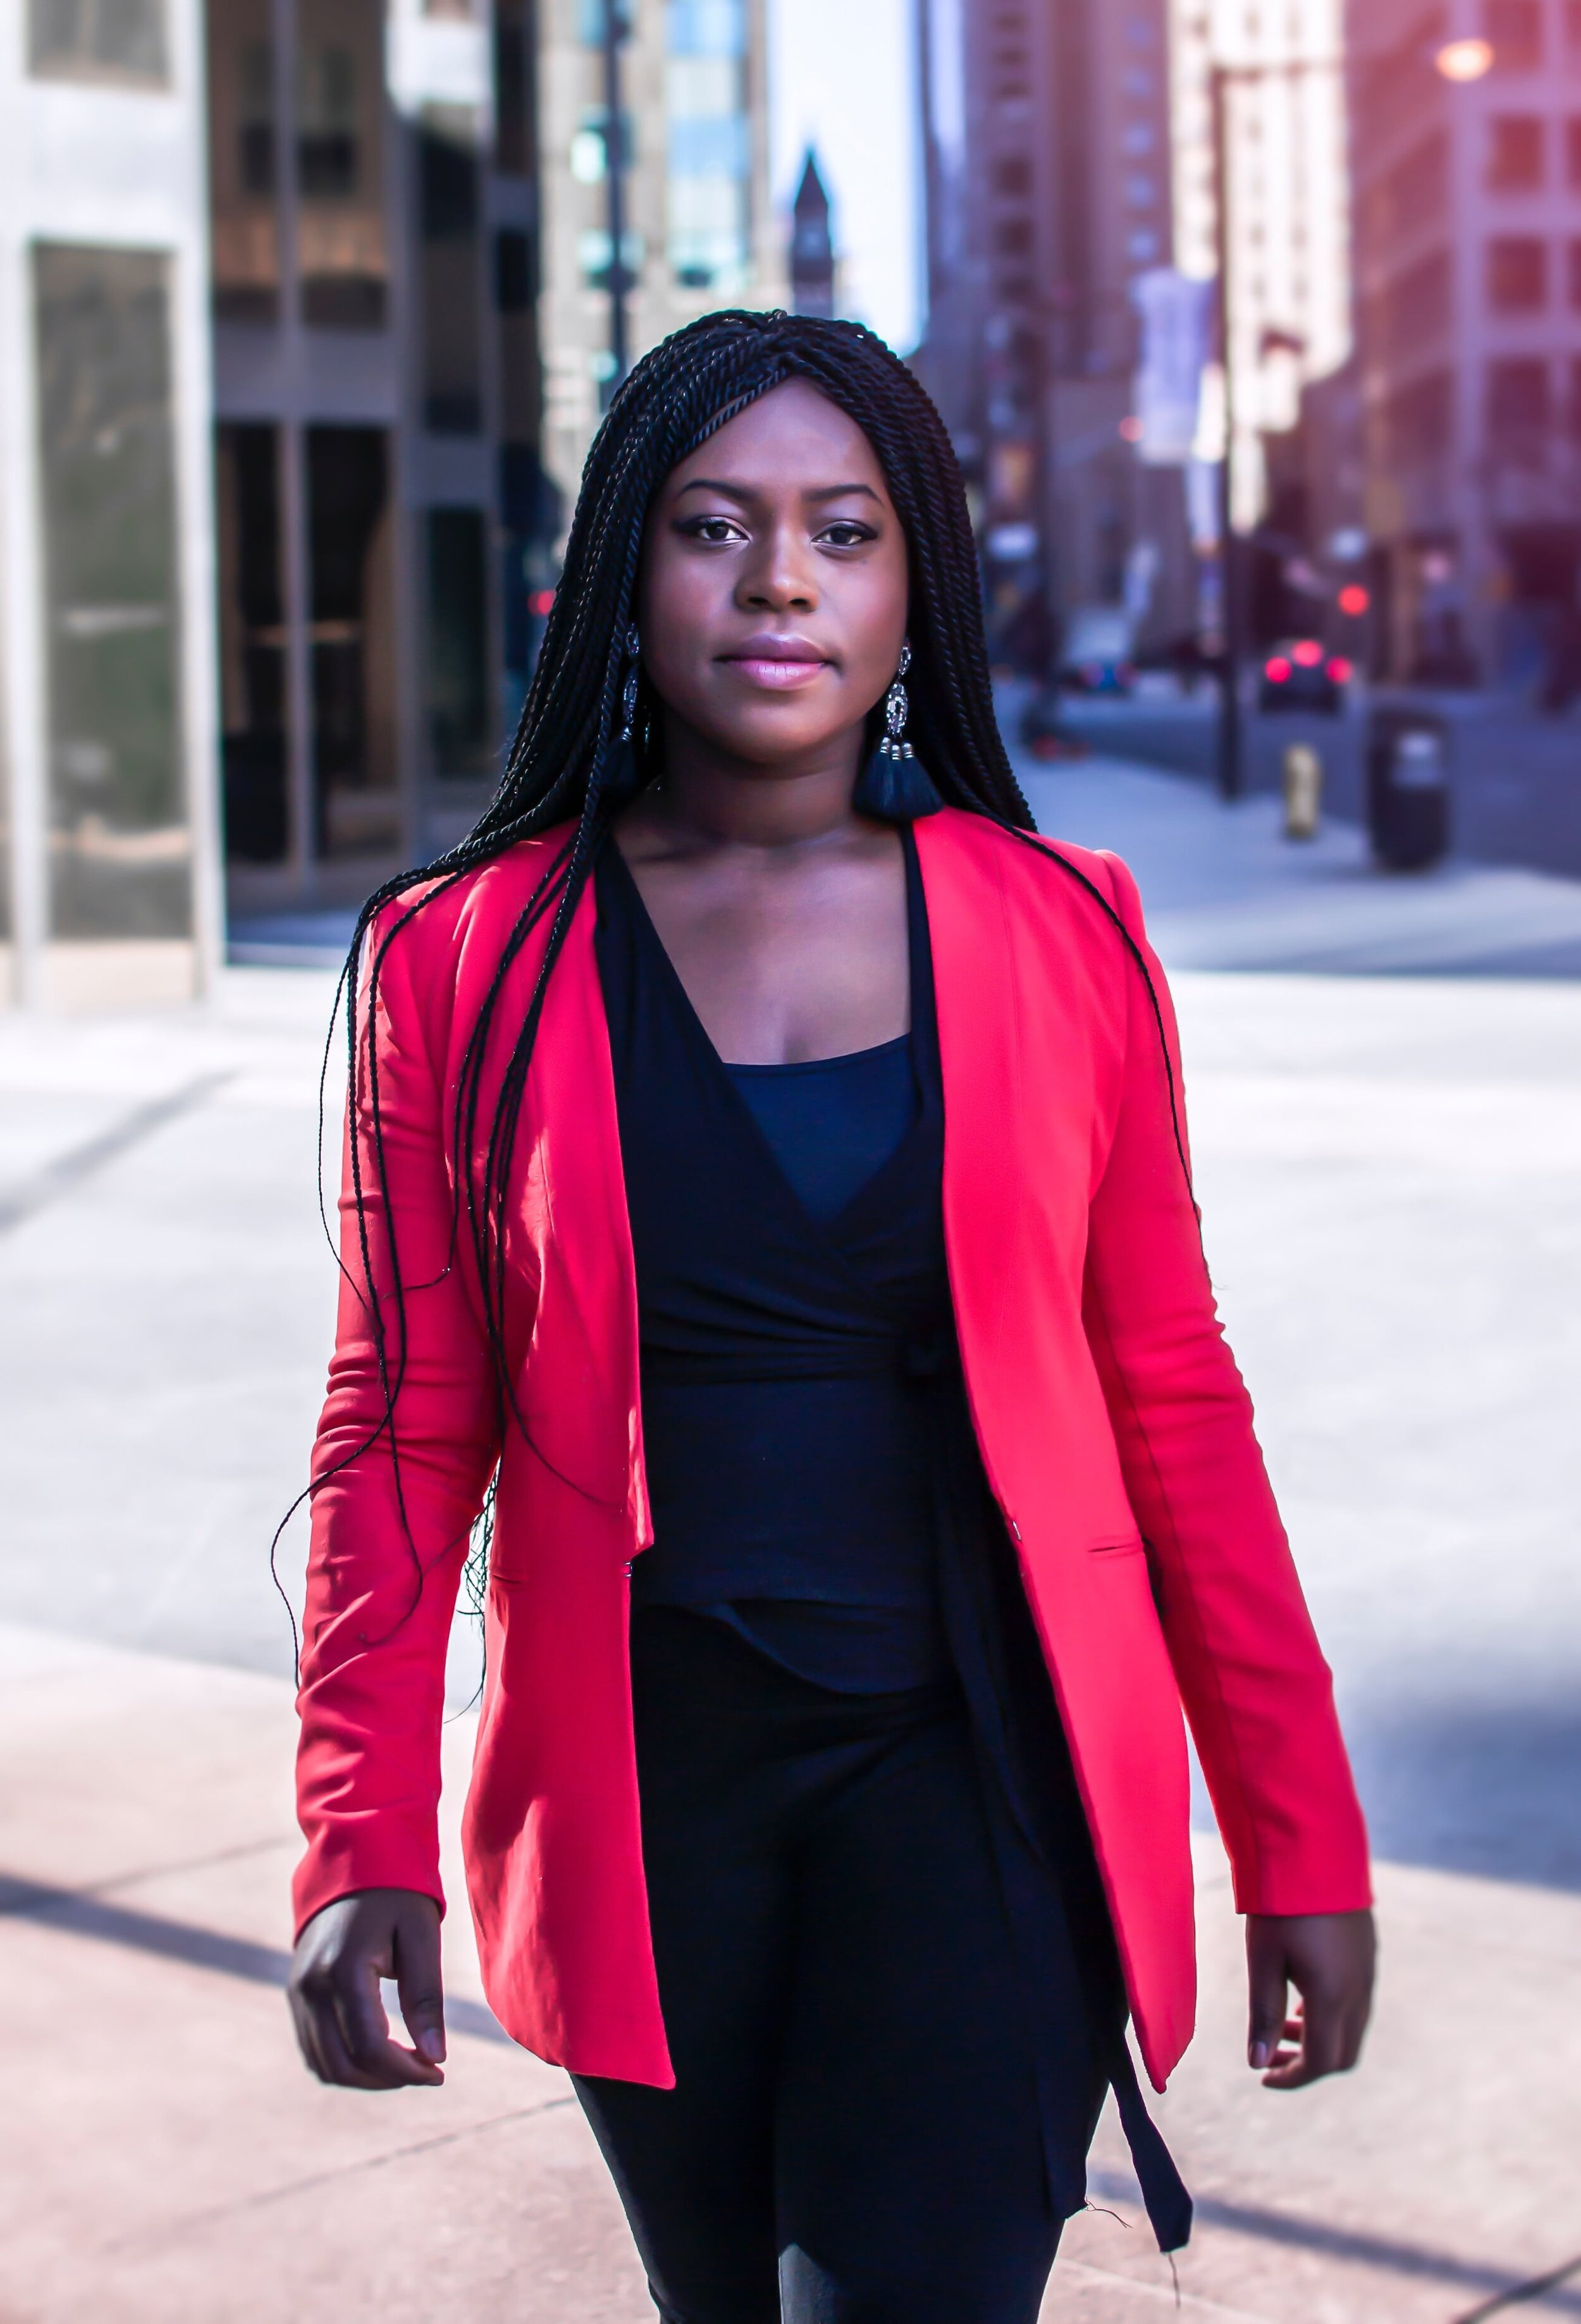 Pear shaped body type wearing bright red blazer, black wrap blouse, dark pants, best work pants for pear shaped.